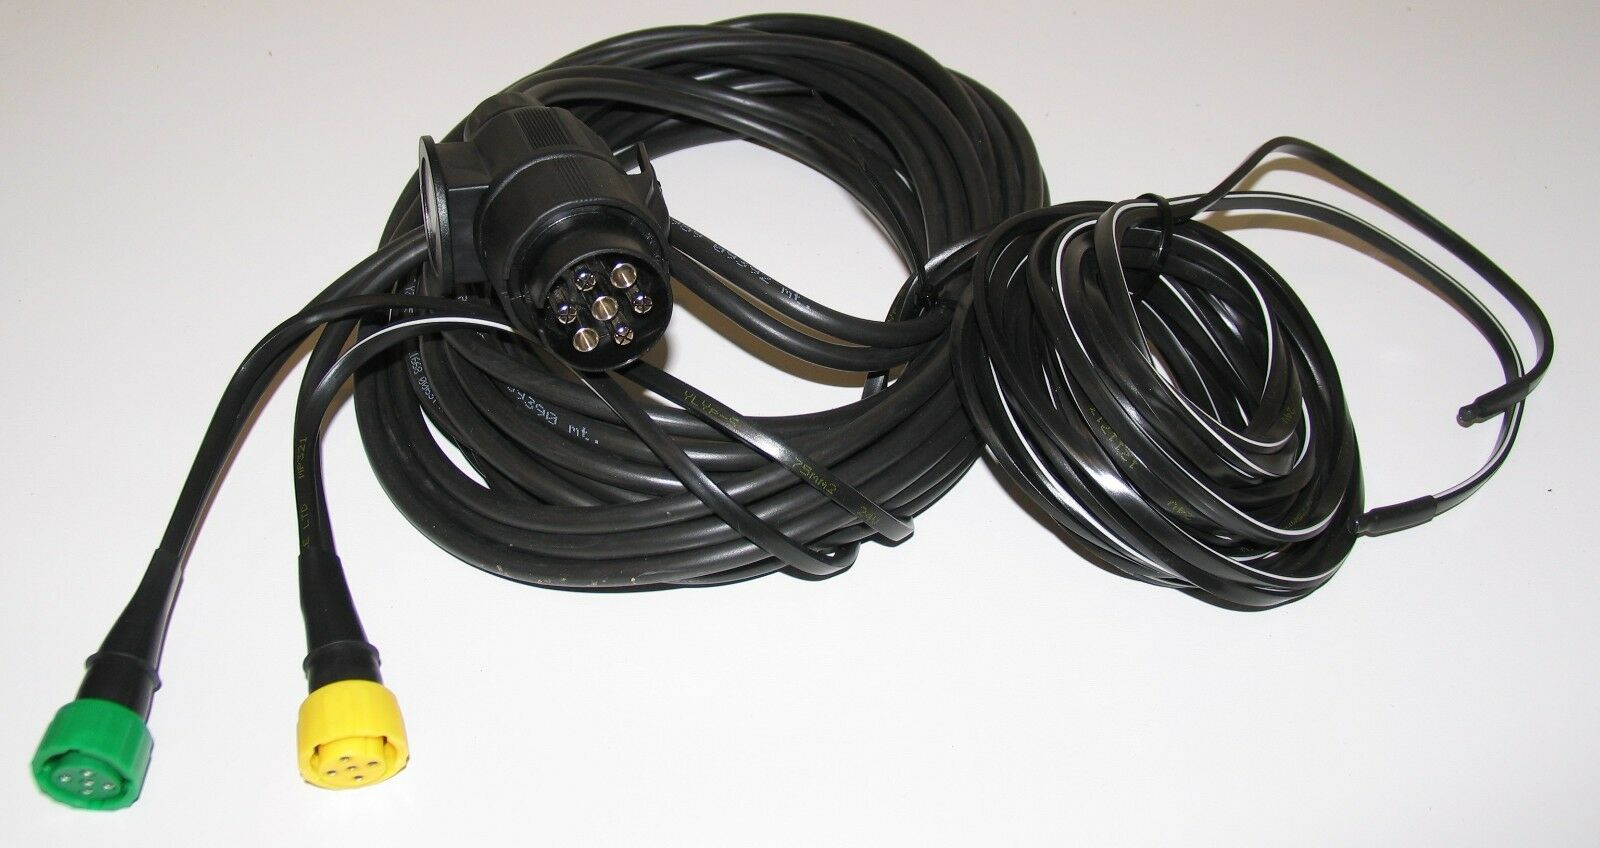 7 Pin Aspock Light Trailer Wiring Harness Loom 8mt Quick Plug In Fit Prong Brian James 1 Of 2 See More